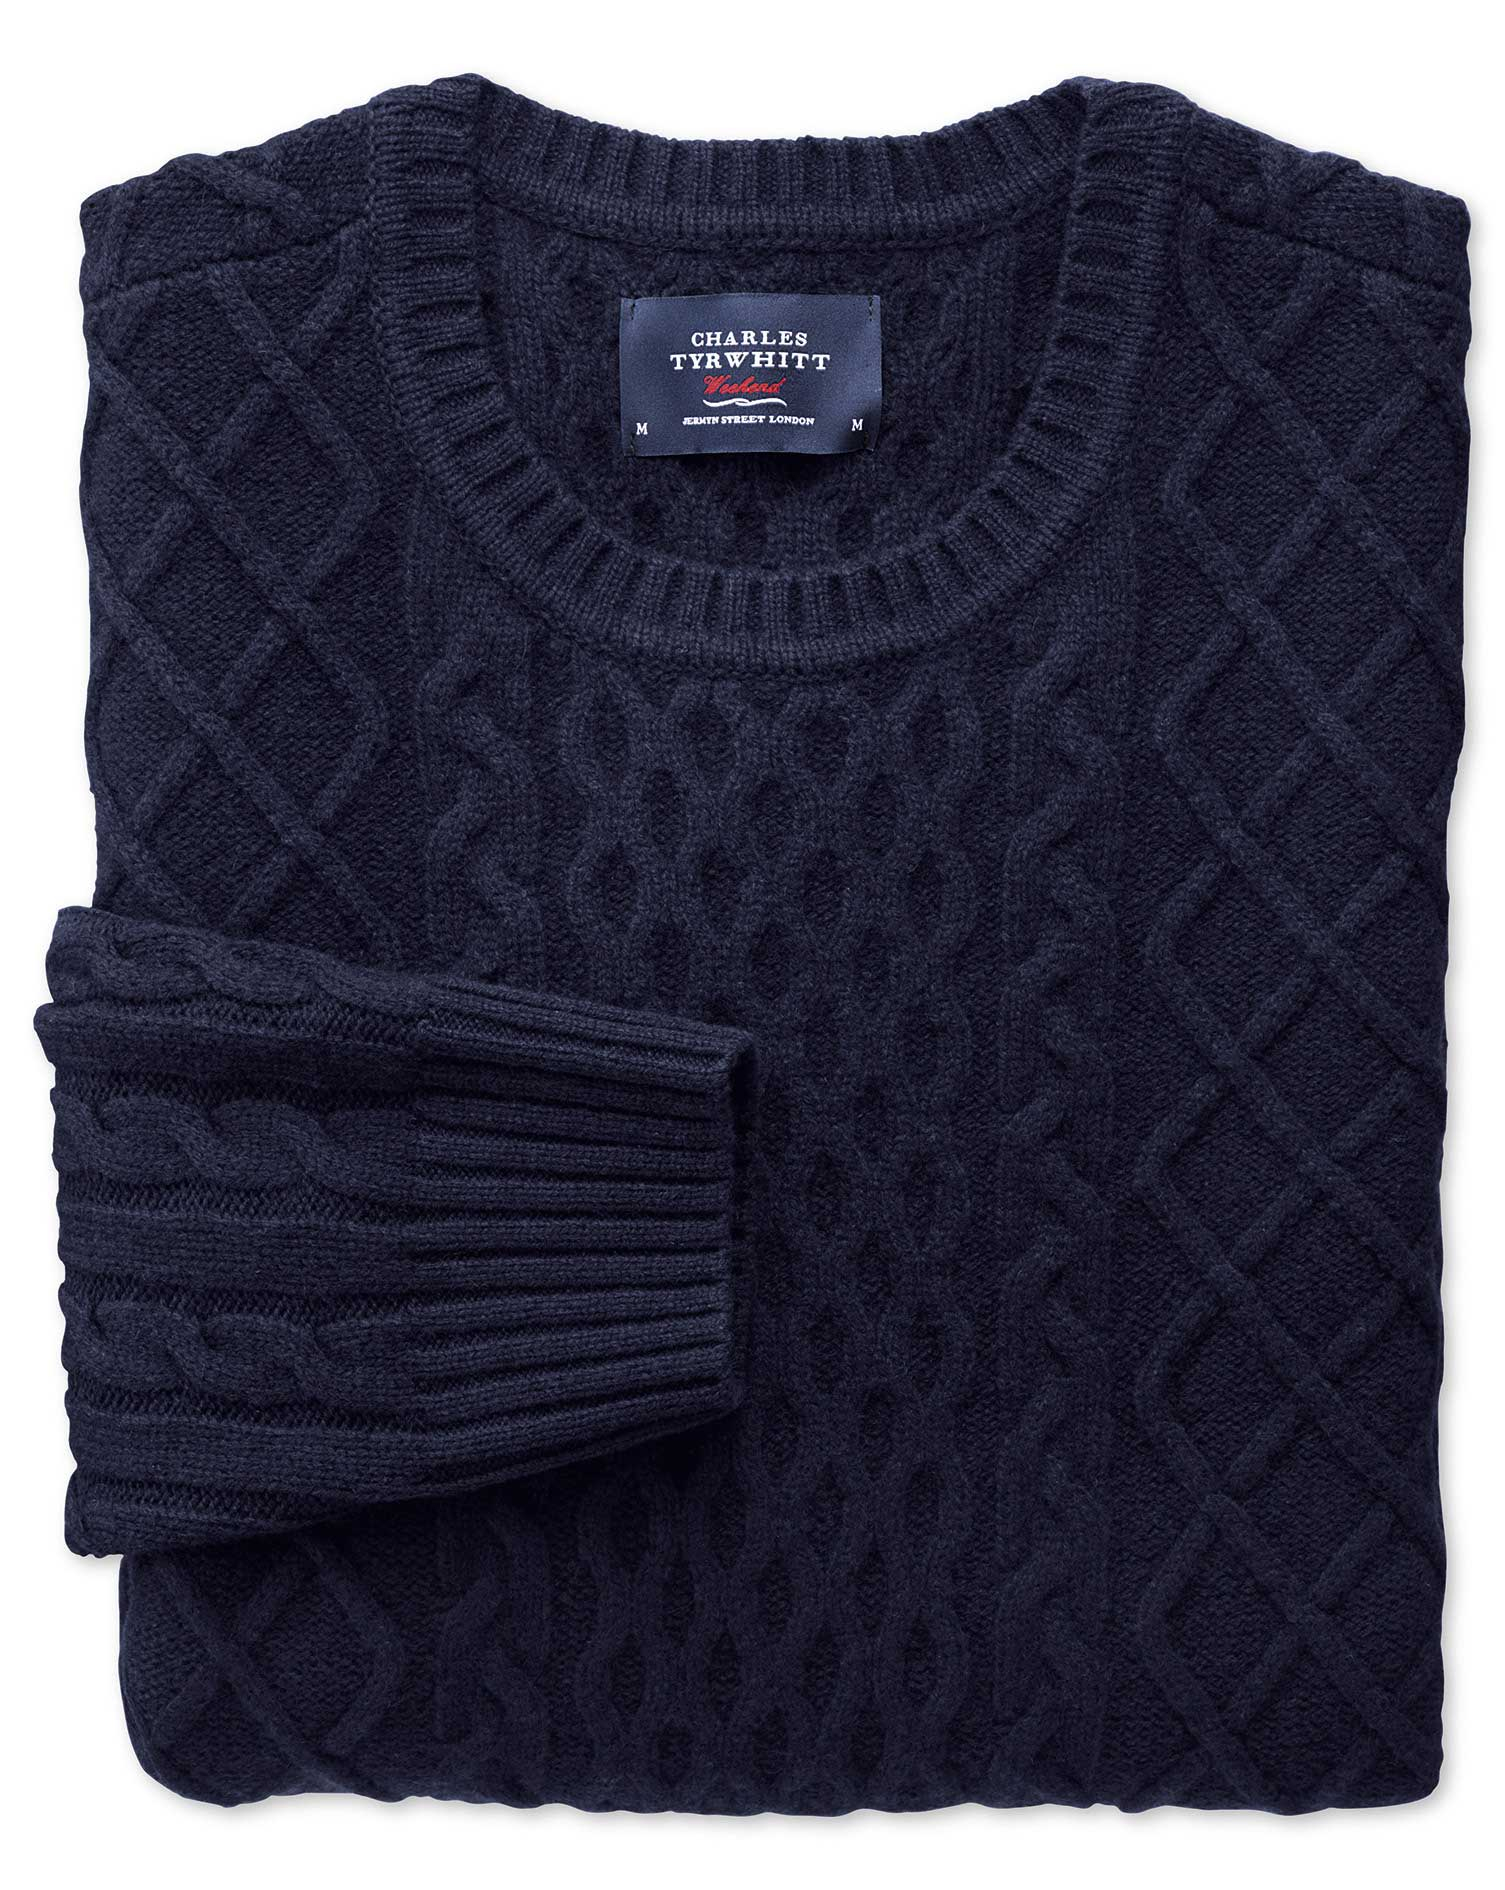 Navy Lambswool Cable Crew Neck Jumper Size Medium by Charles Tyrwhitt